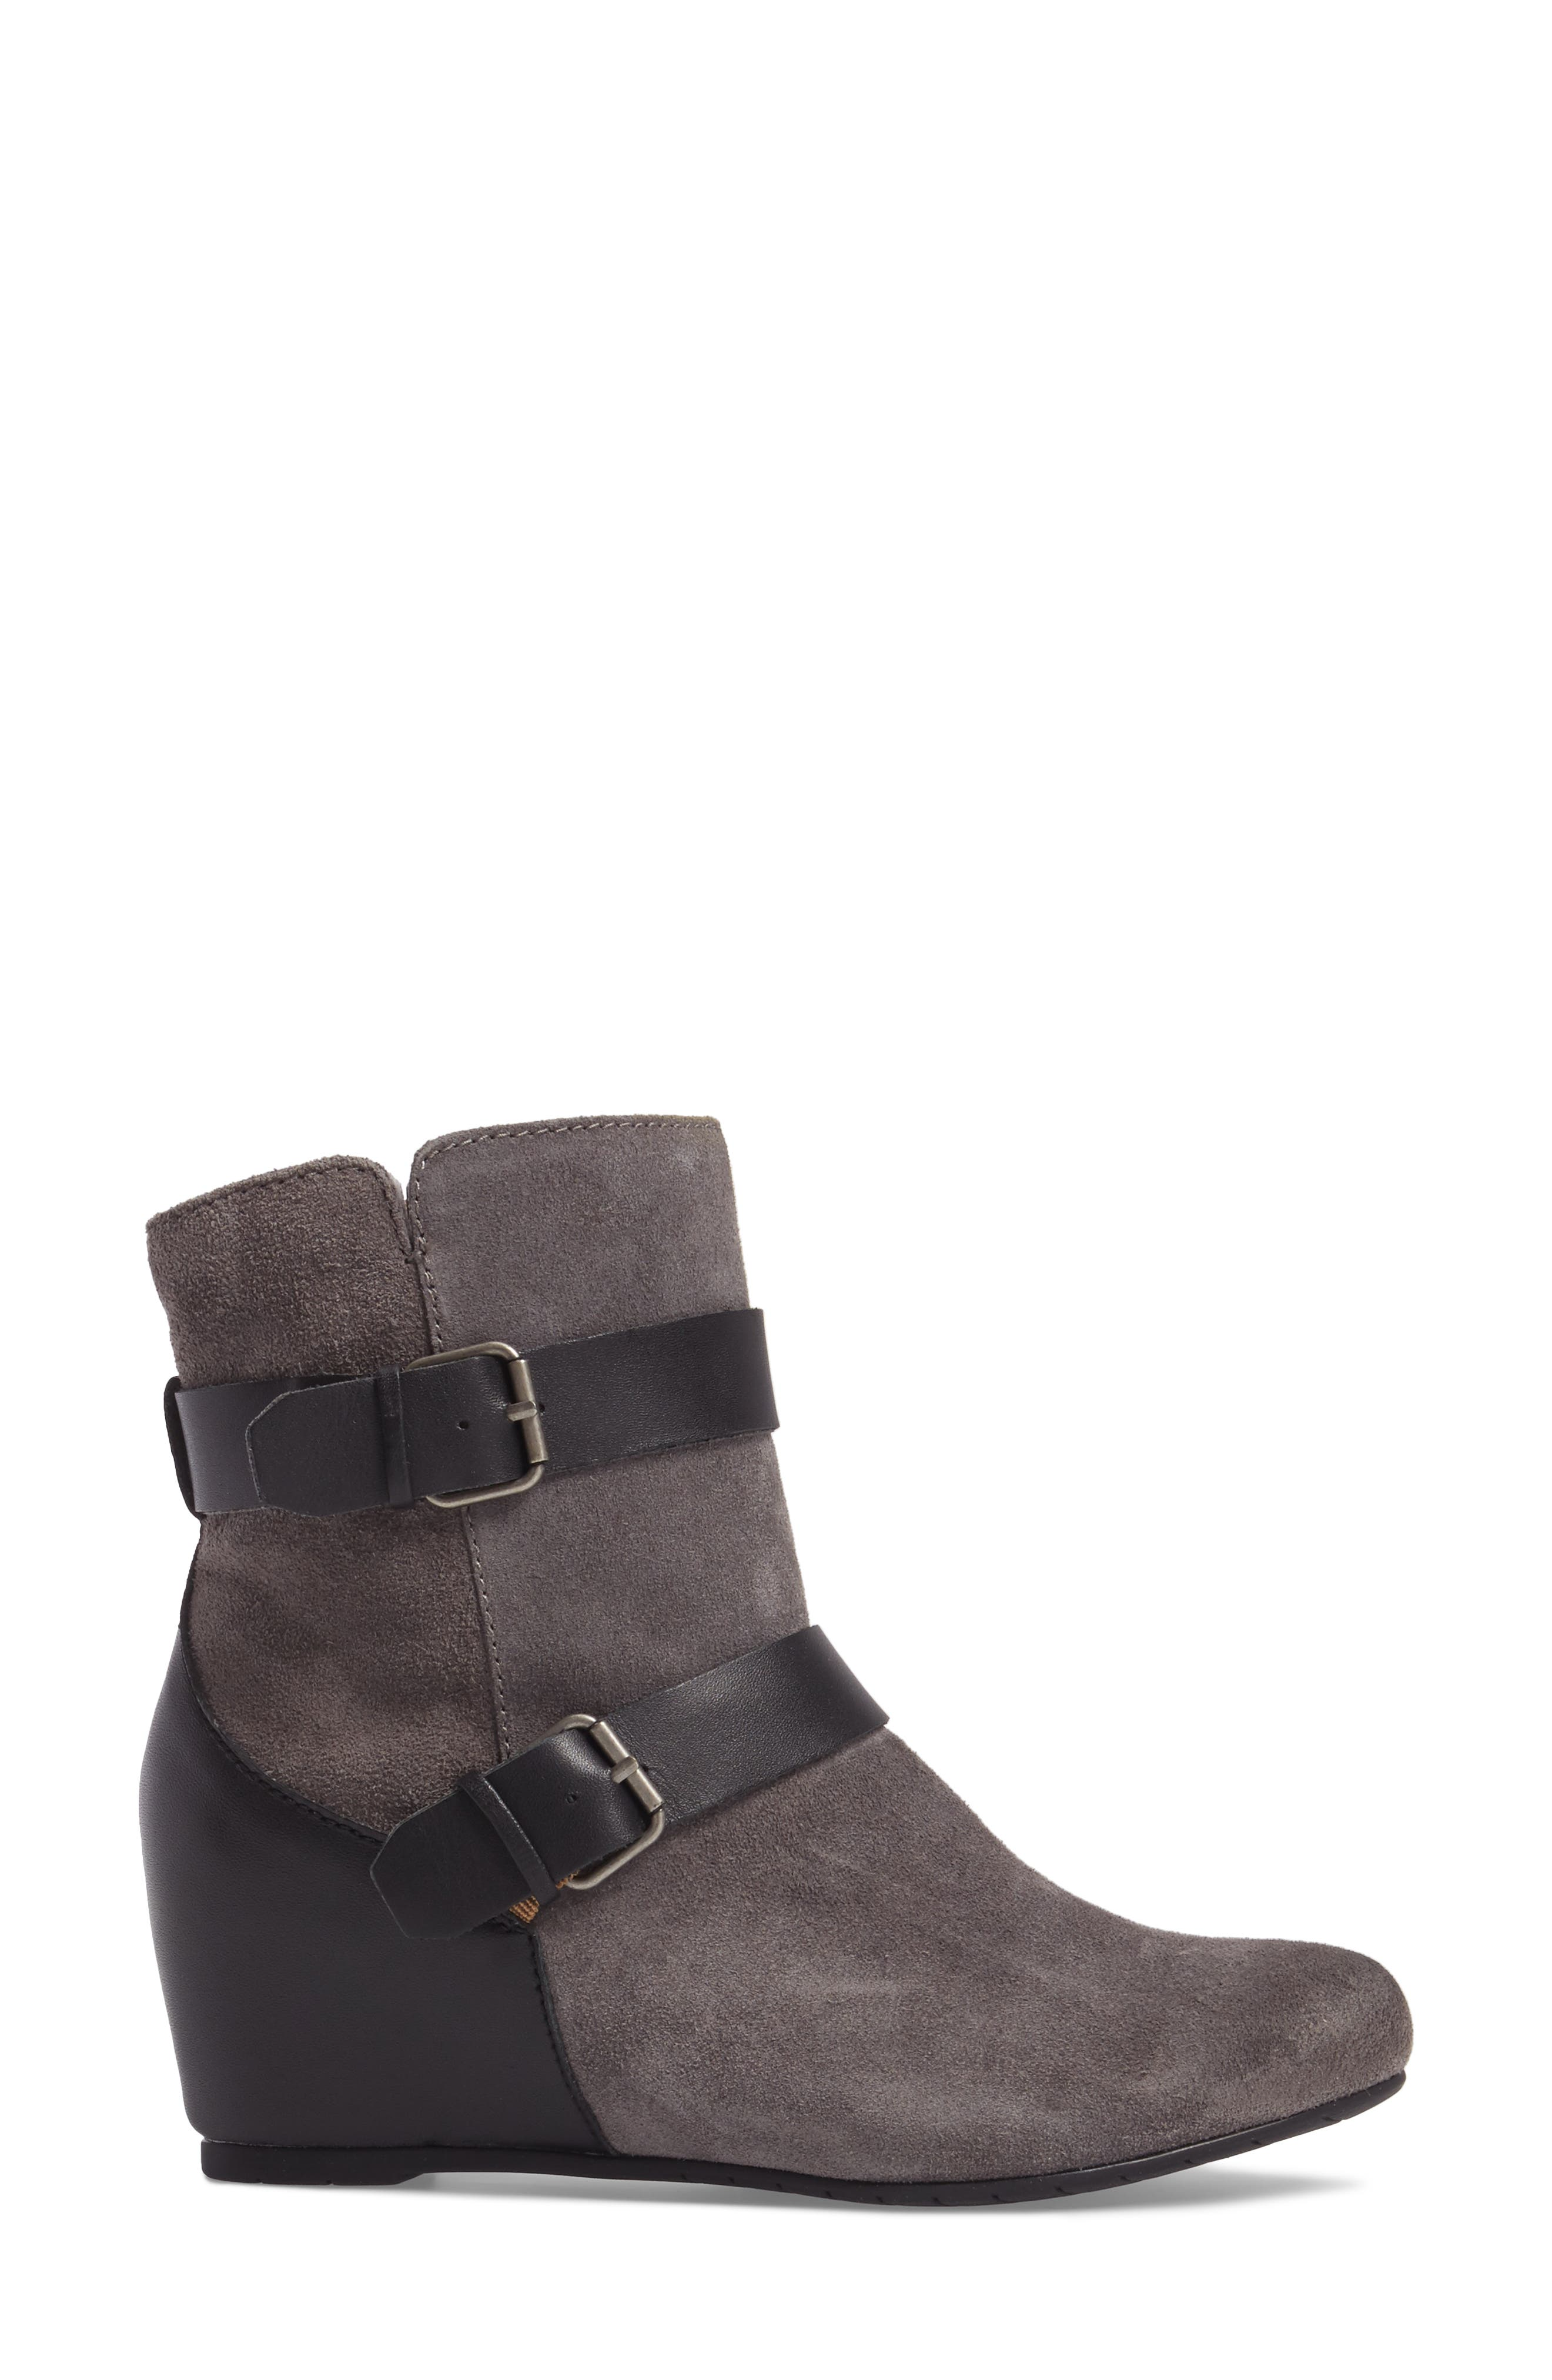 Ramika Wedge Bootie,                             Alternate thumbnail 8, color,